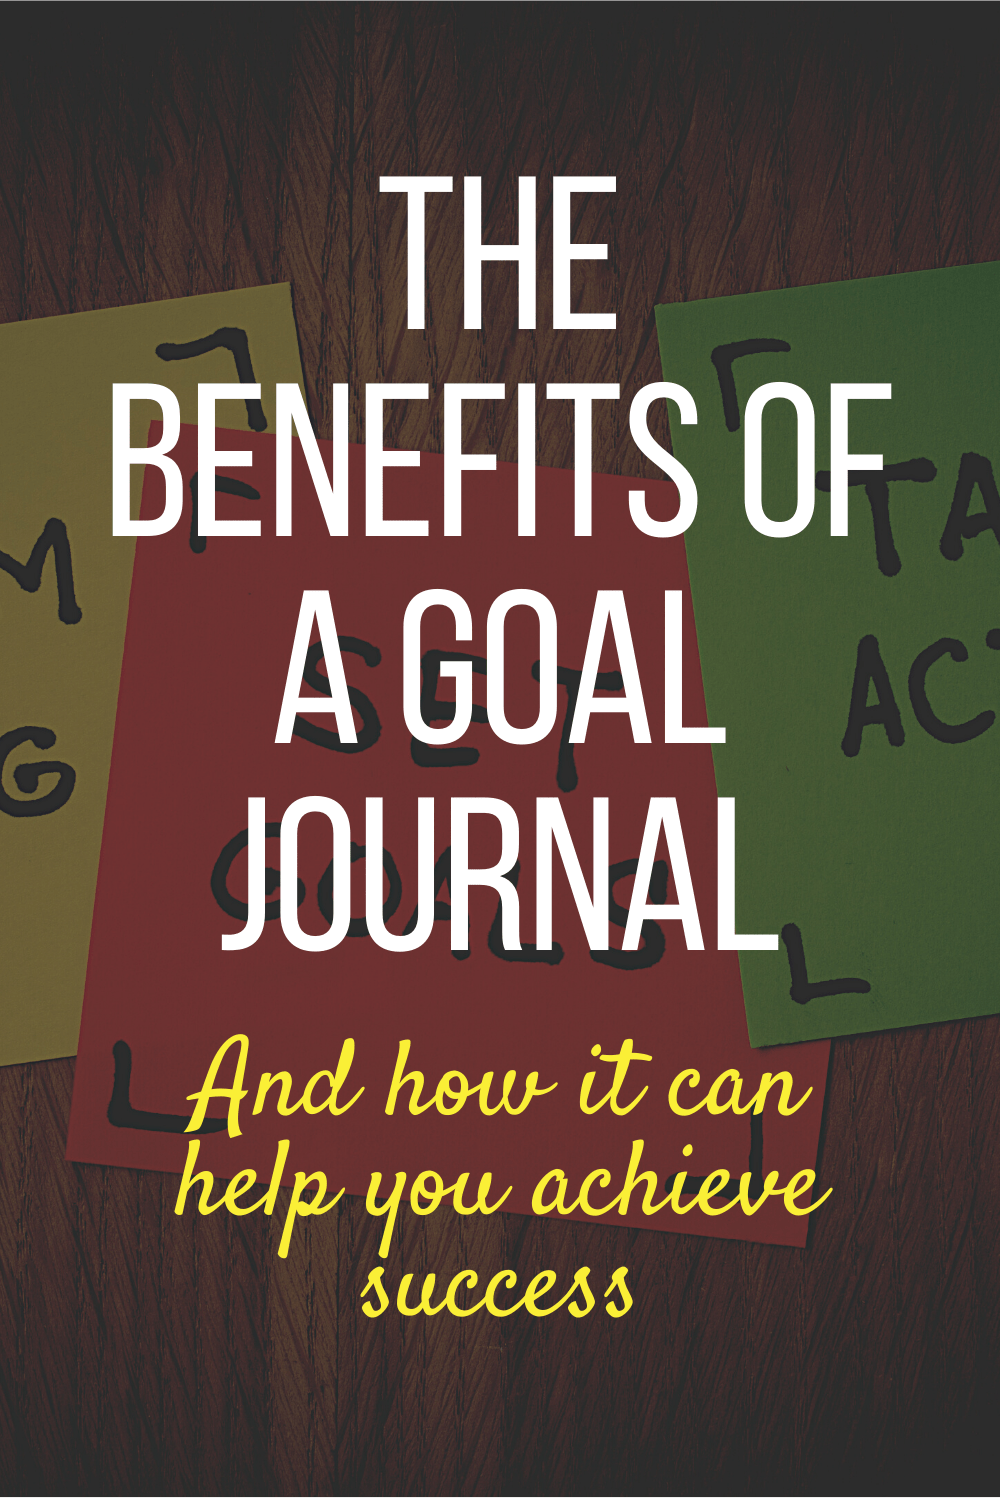 Find out 8 ways a goal journal can help you achieve success